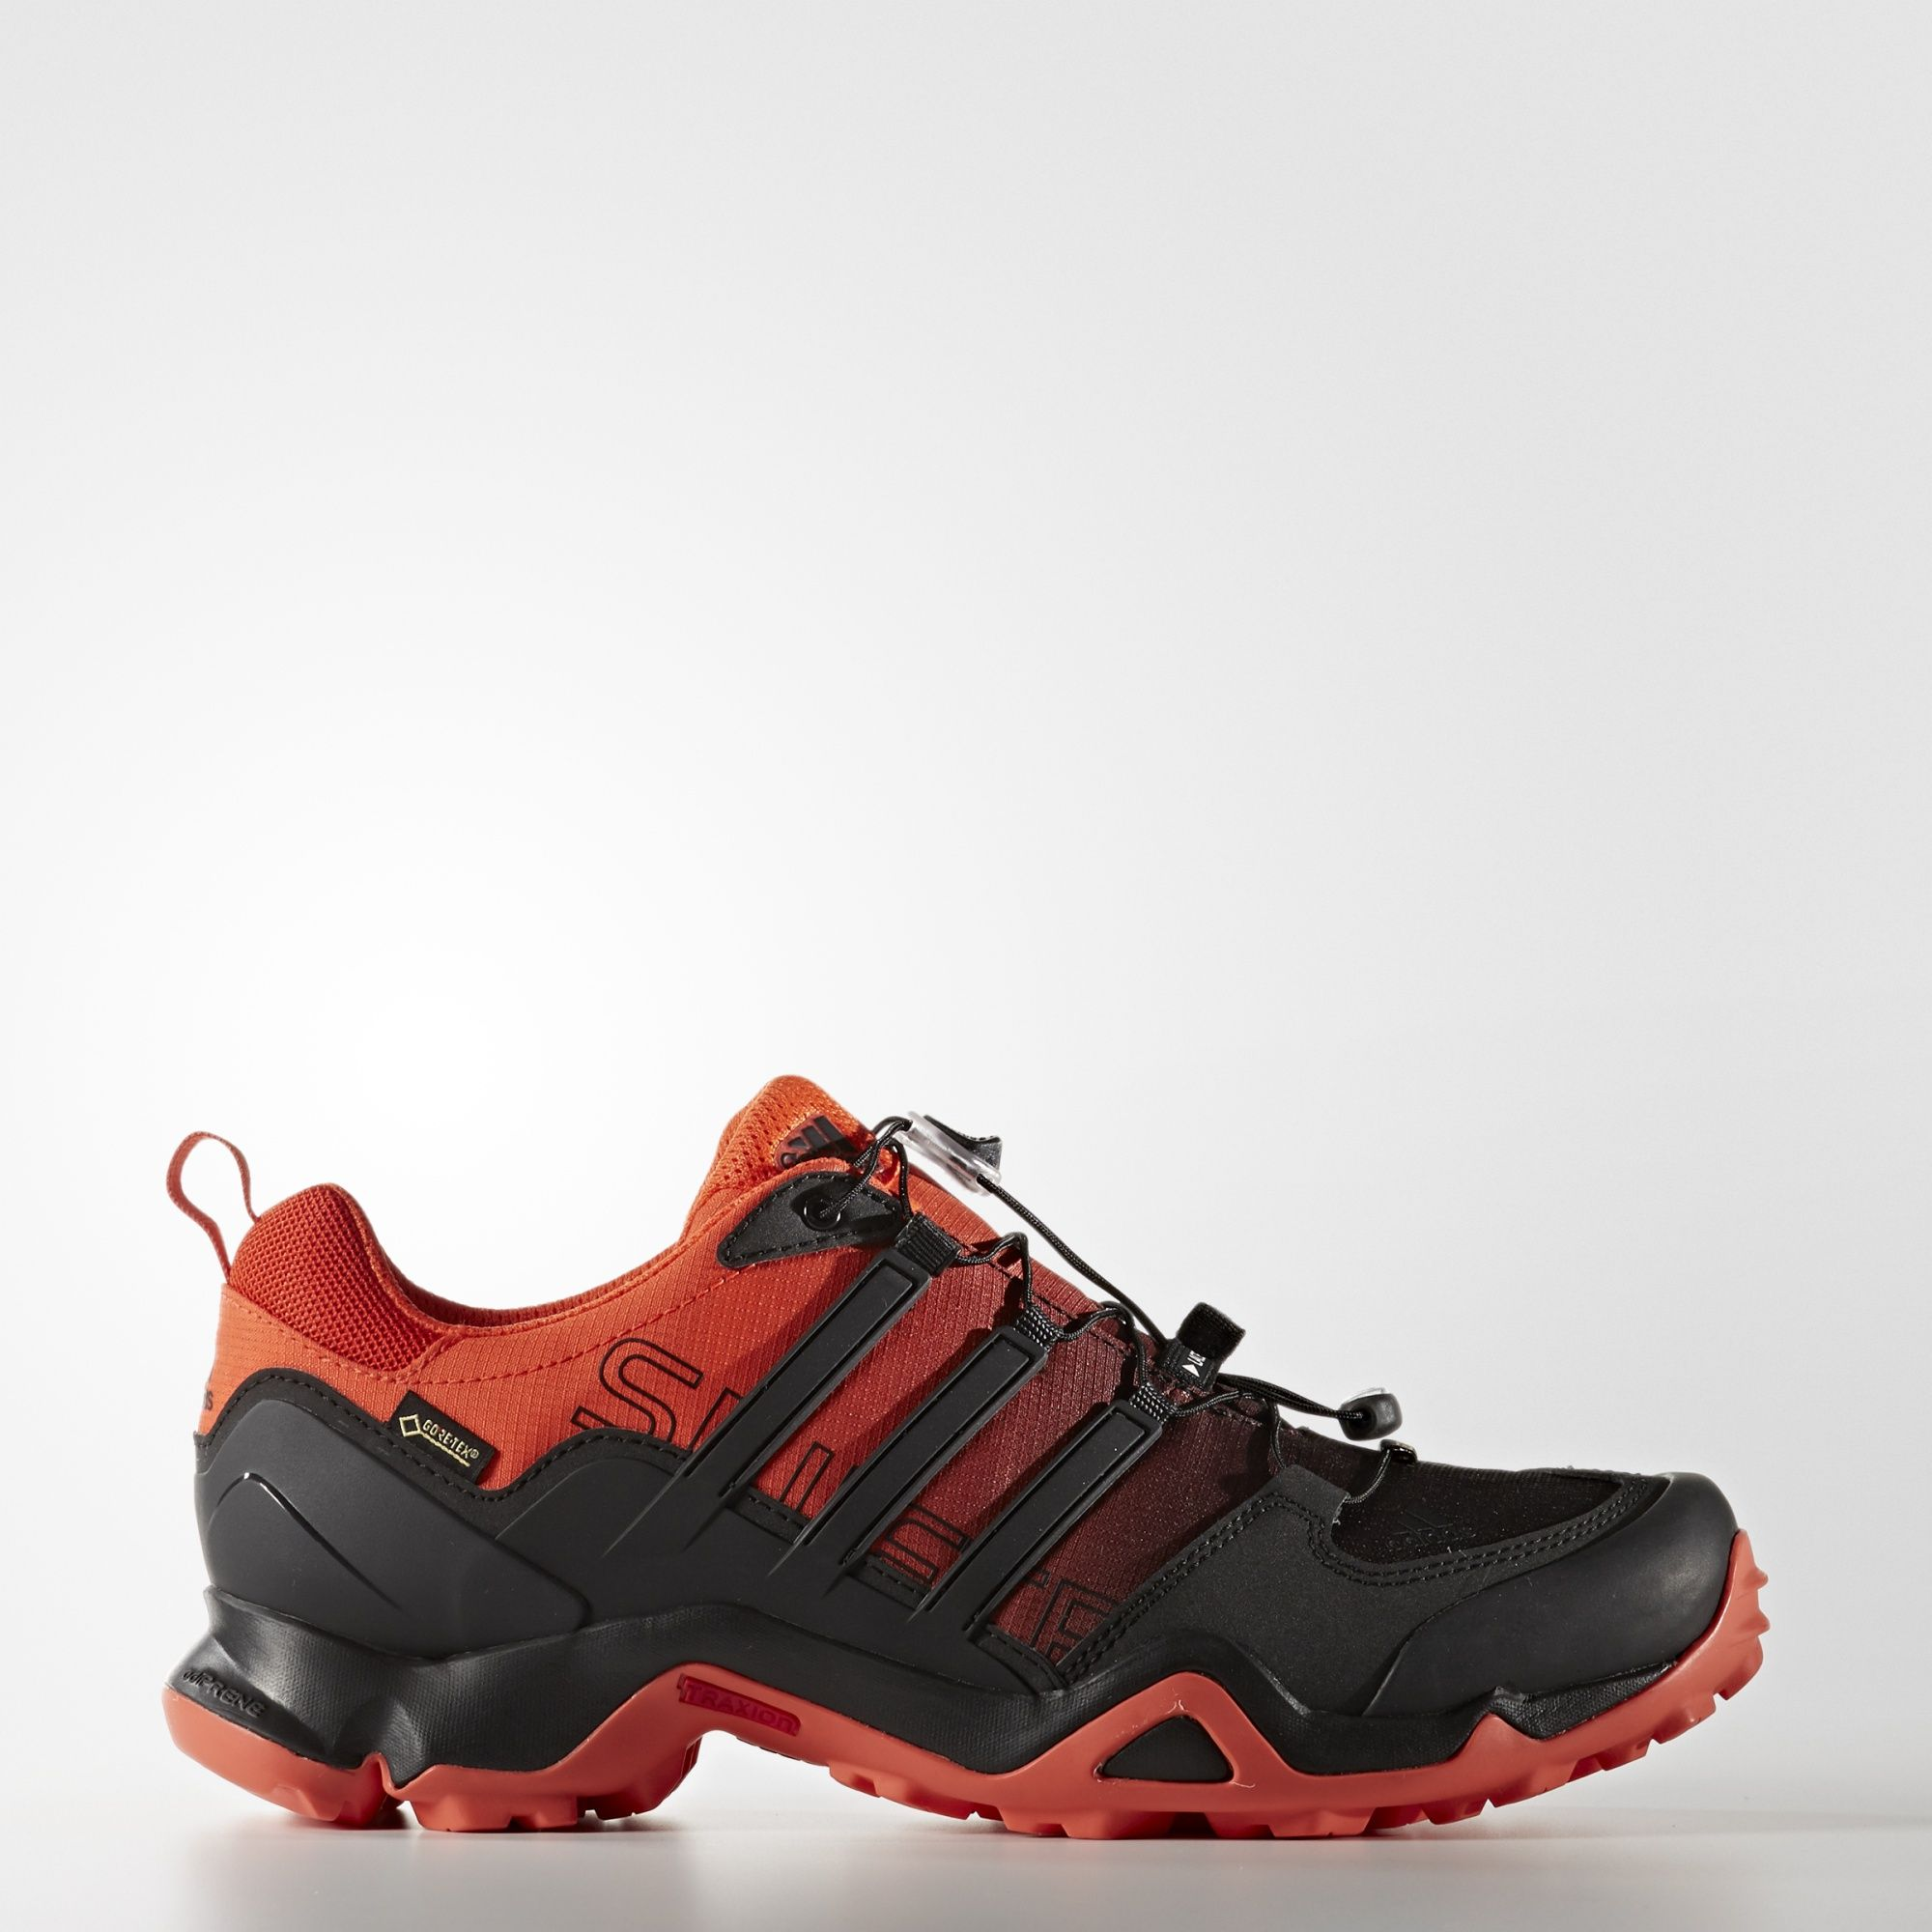 Online shopping canada · Shop for Men's Terrex Swift GTX Shoes - Orange at  adidas.ca! See all